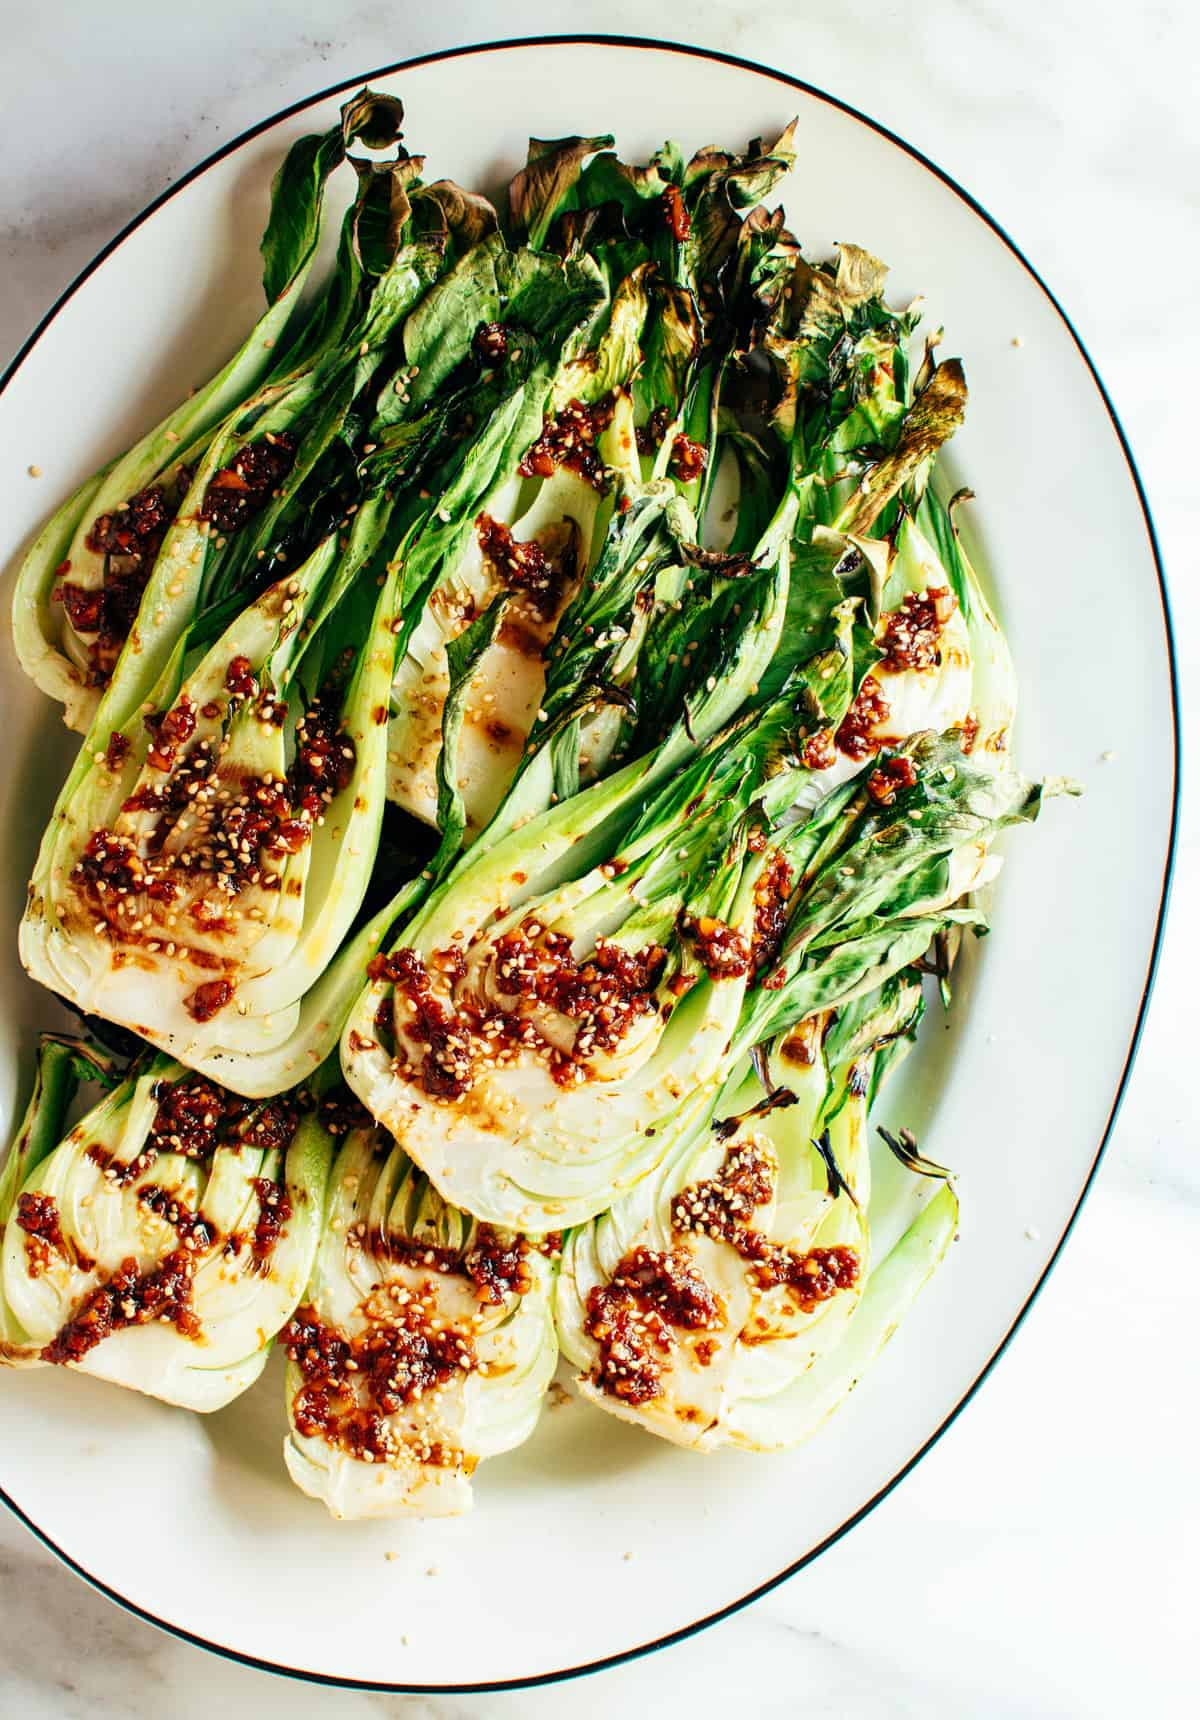 Grilled Baby Bok Choy photographed from above on a white platter.